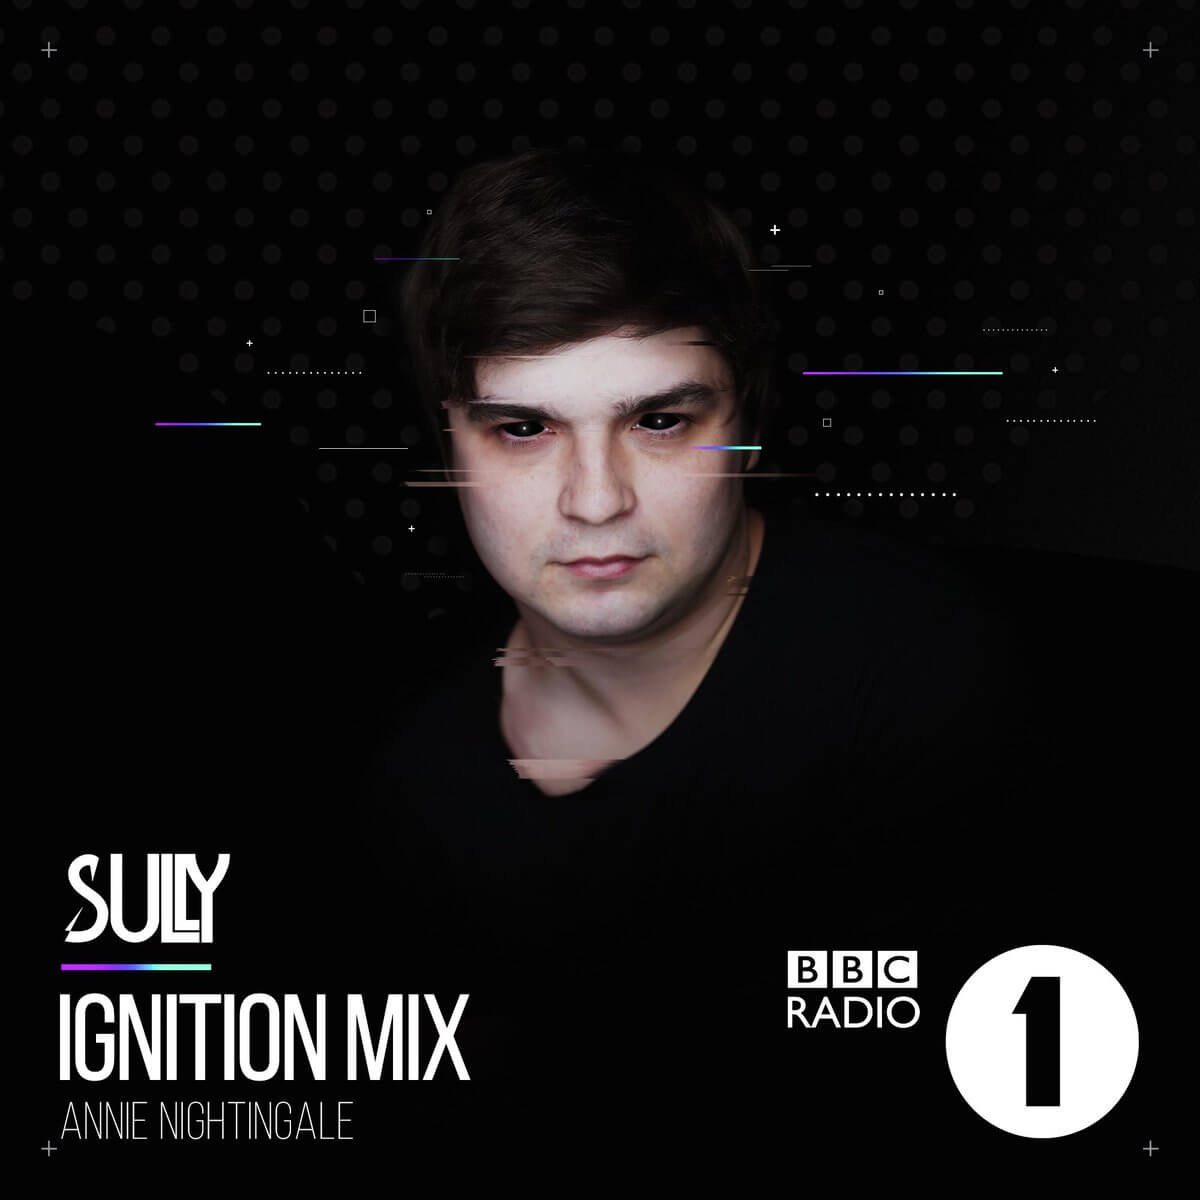 Sully Ignition Mix BBC1 Radio Annie Nightingale